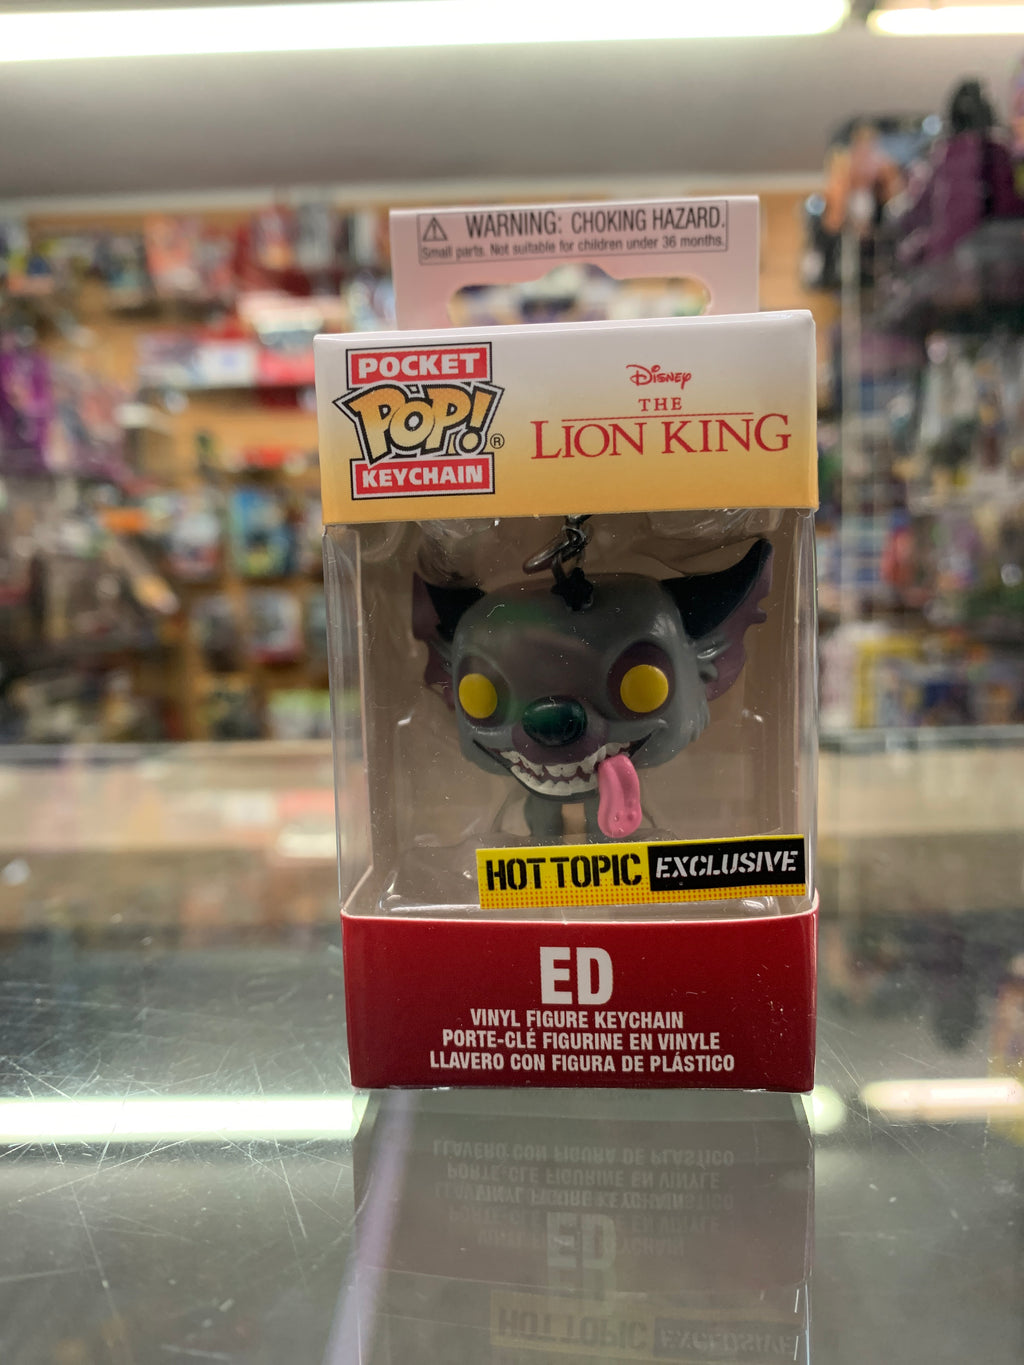 POP! Pocket Keychain The Lion King Ed Hot Topic Exclusive